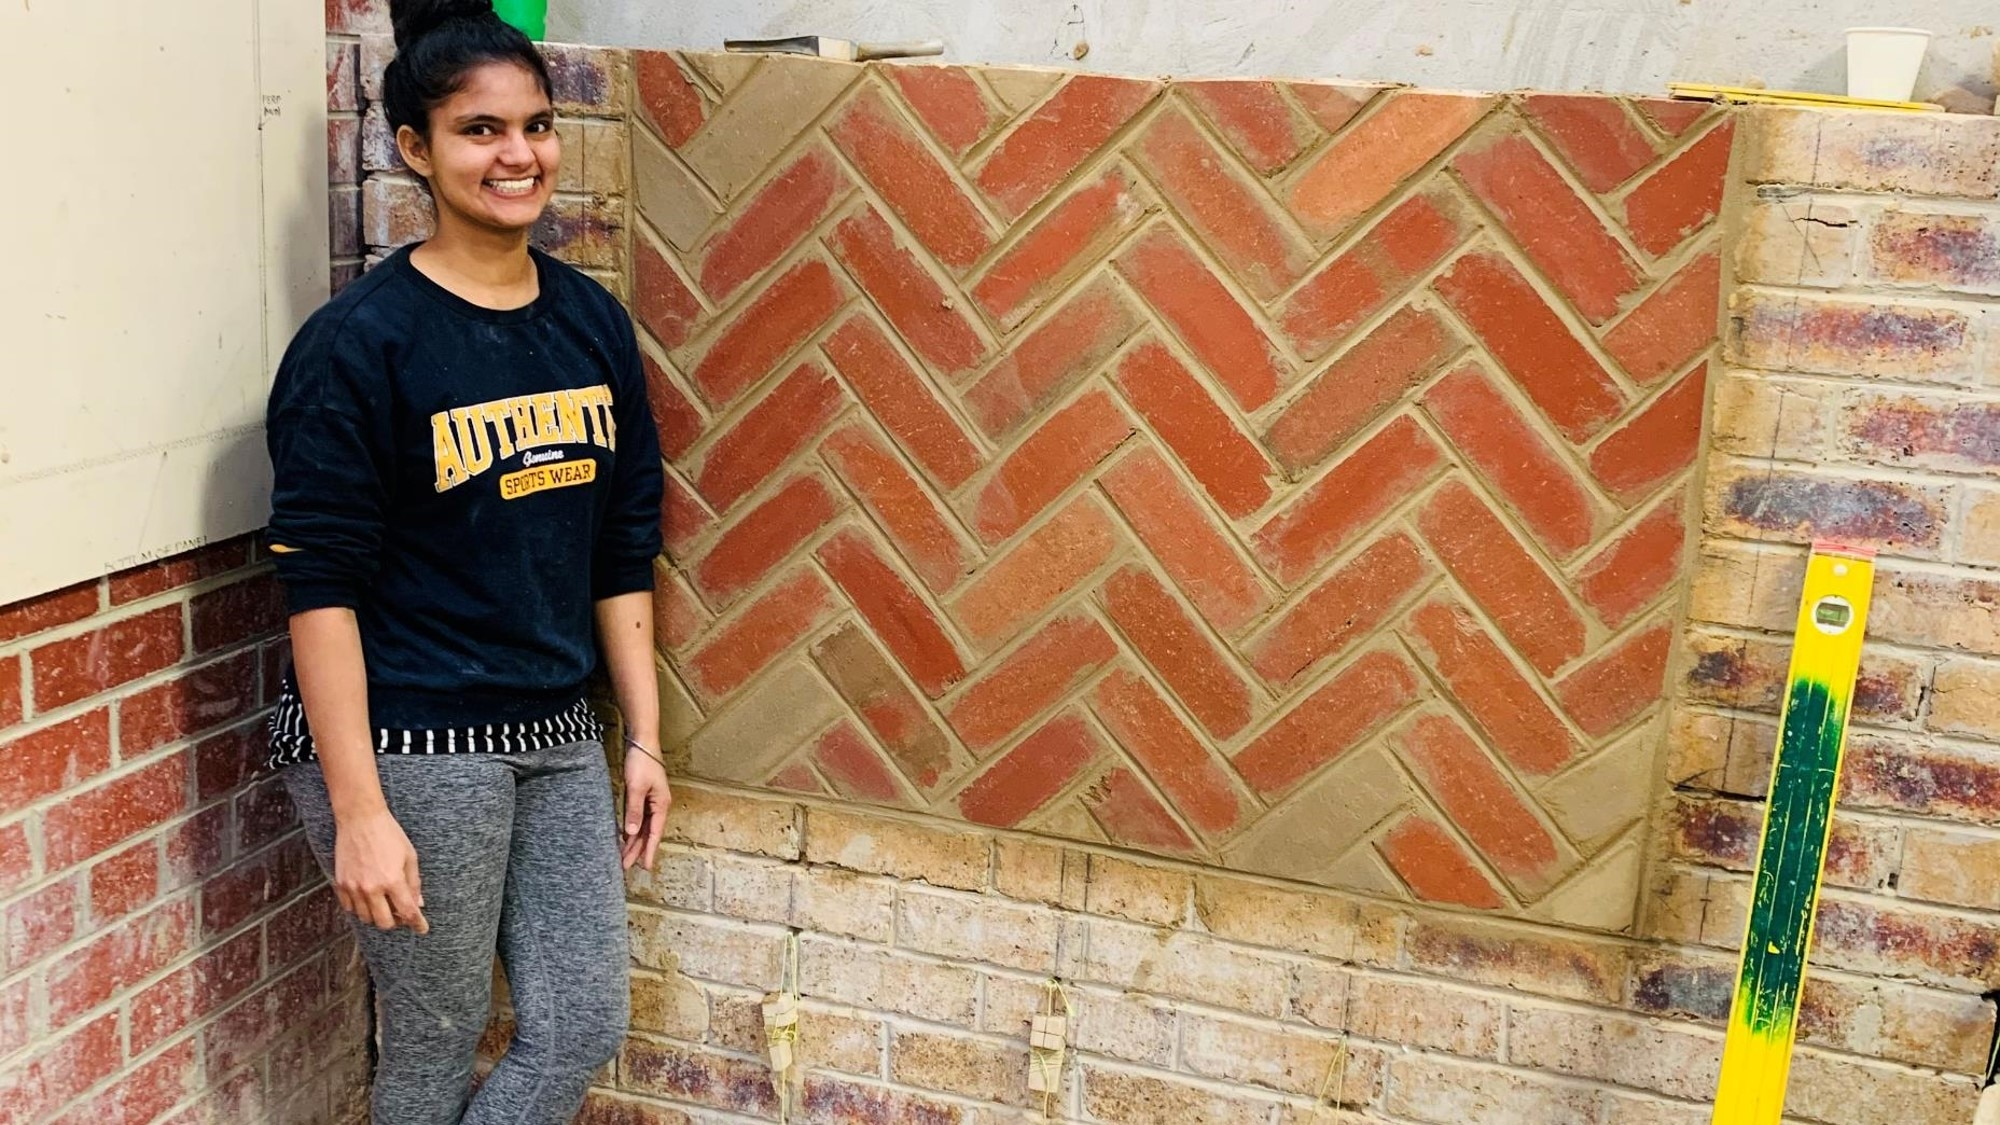 Mandeep Kaur opted for a career in bricklaying after she struggled to secure a job during the pandemic